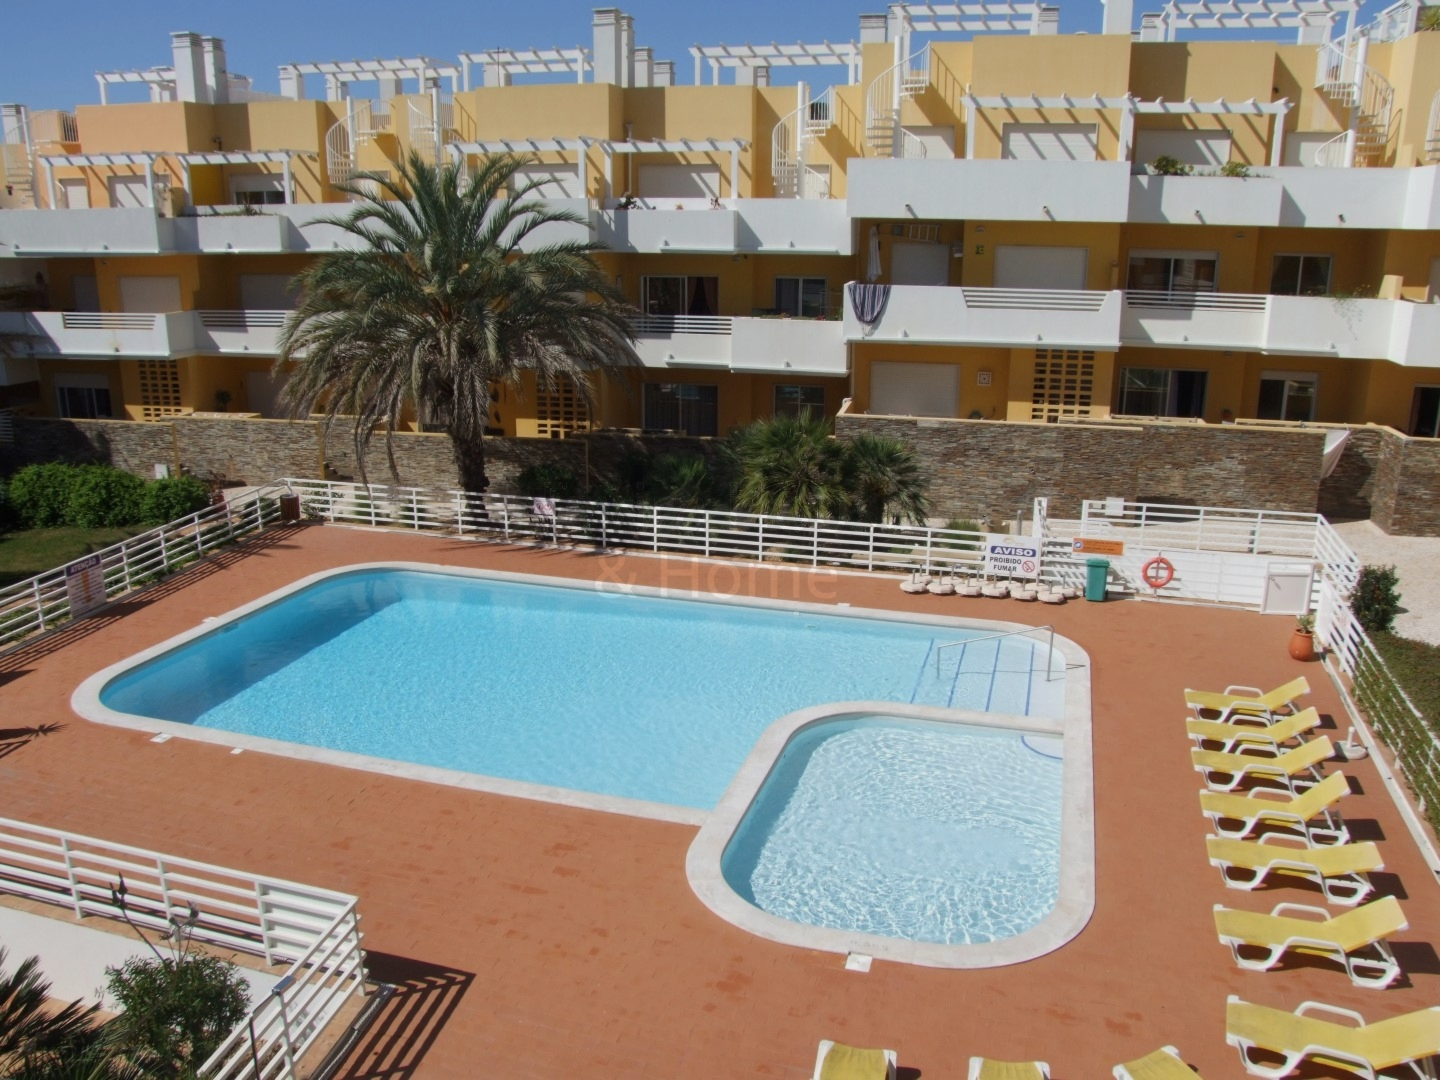 A0524 - 2 Bedroom Apartment With Pool  Cabanas  Tavira  Portugal